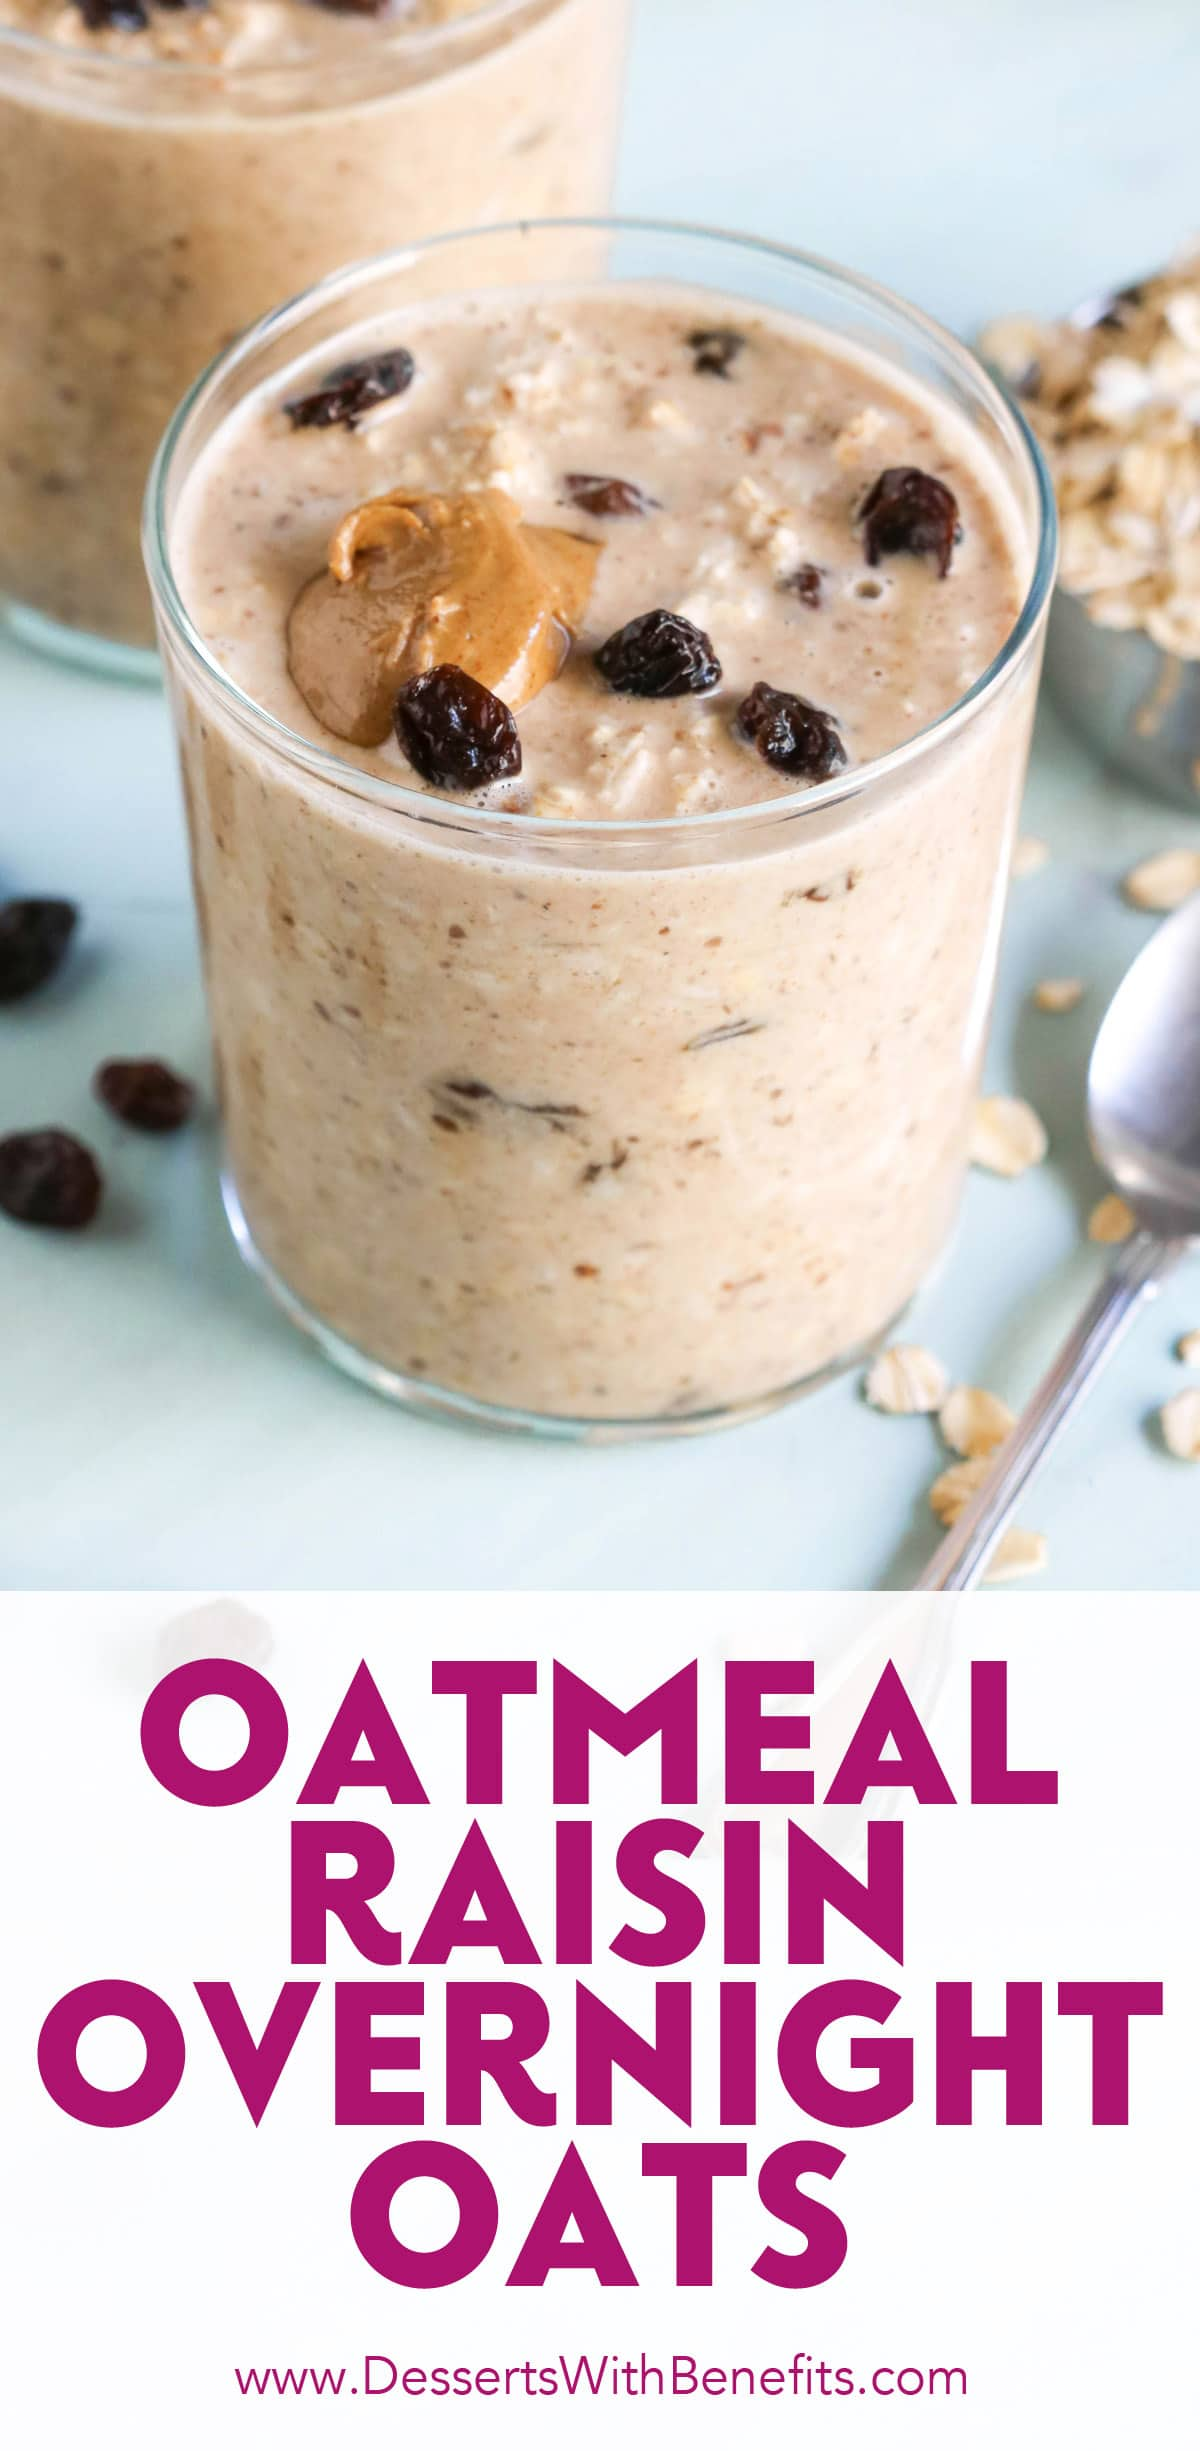 These Oatmeal Raisin Cookie Overnight Dessert Oats have all the flavor of oatmeal raisin cookies but in oatmeal form, and without the butter, oil, and sugar! Gluten free and vegan, and made with whole grain oats, nut butter, and a hint of vanilla and cinnamon.